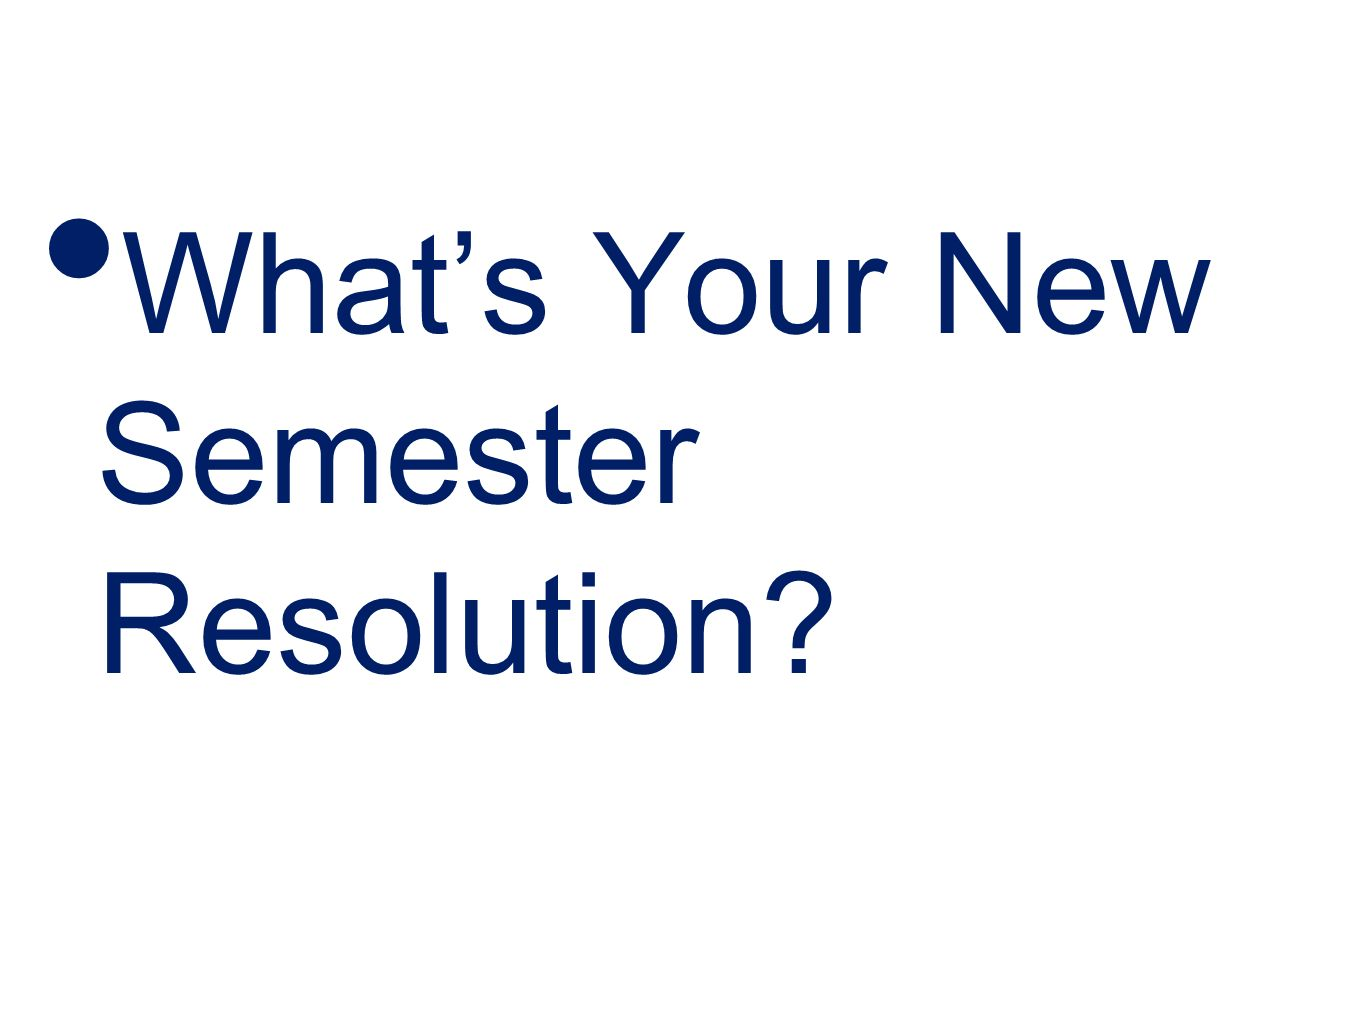 Whats Your New Semester Resolution?